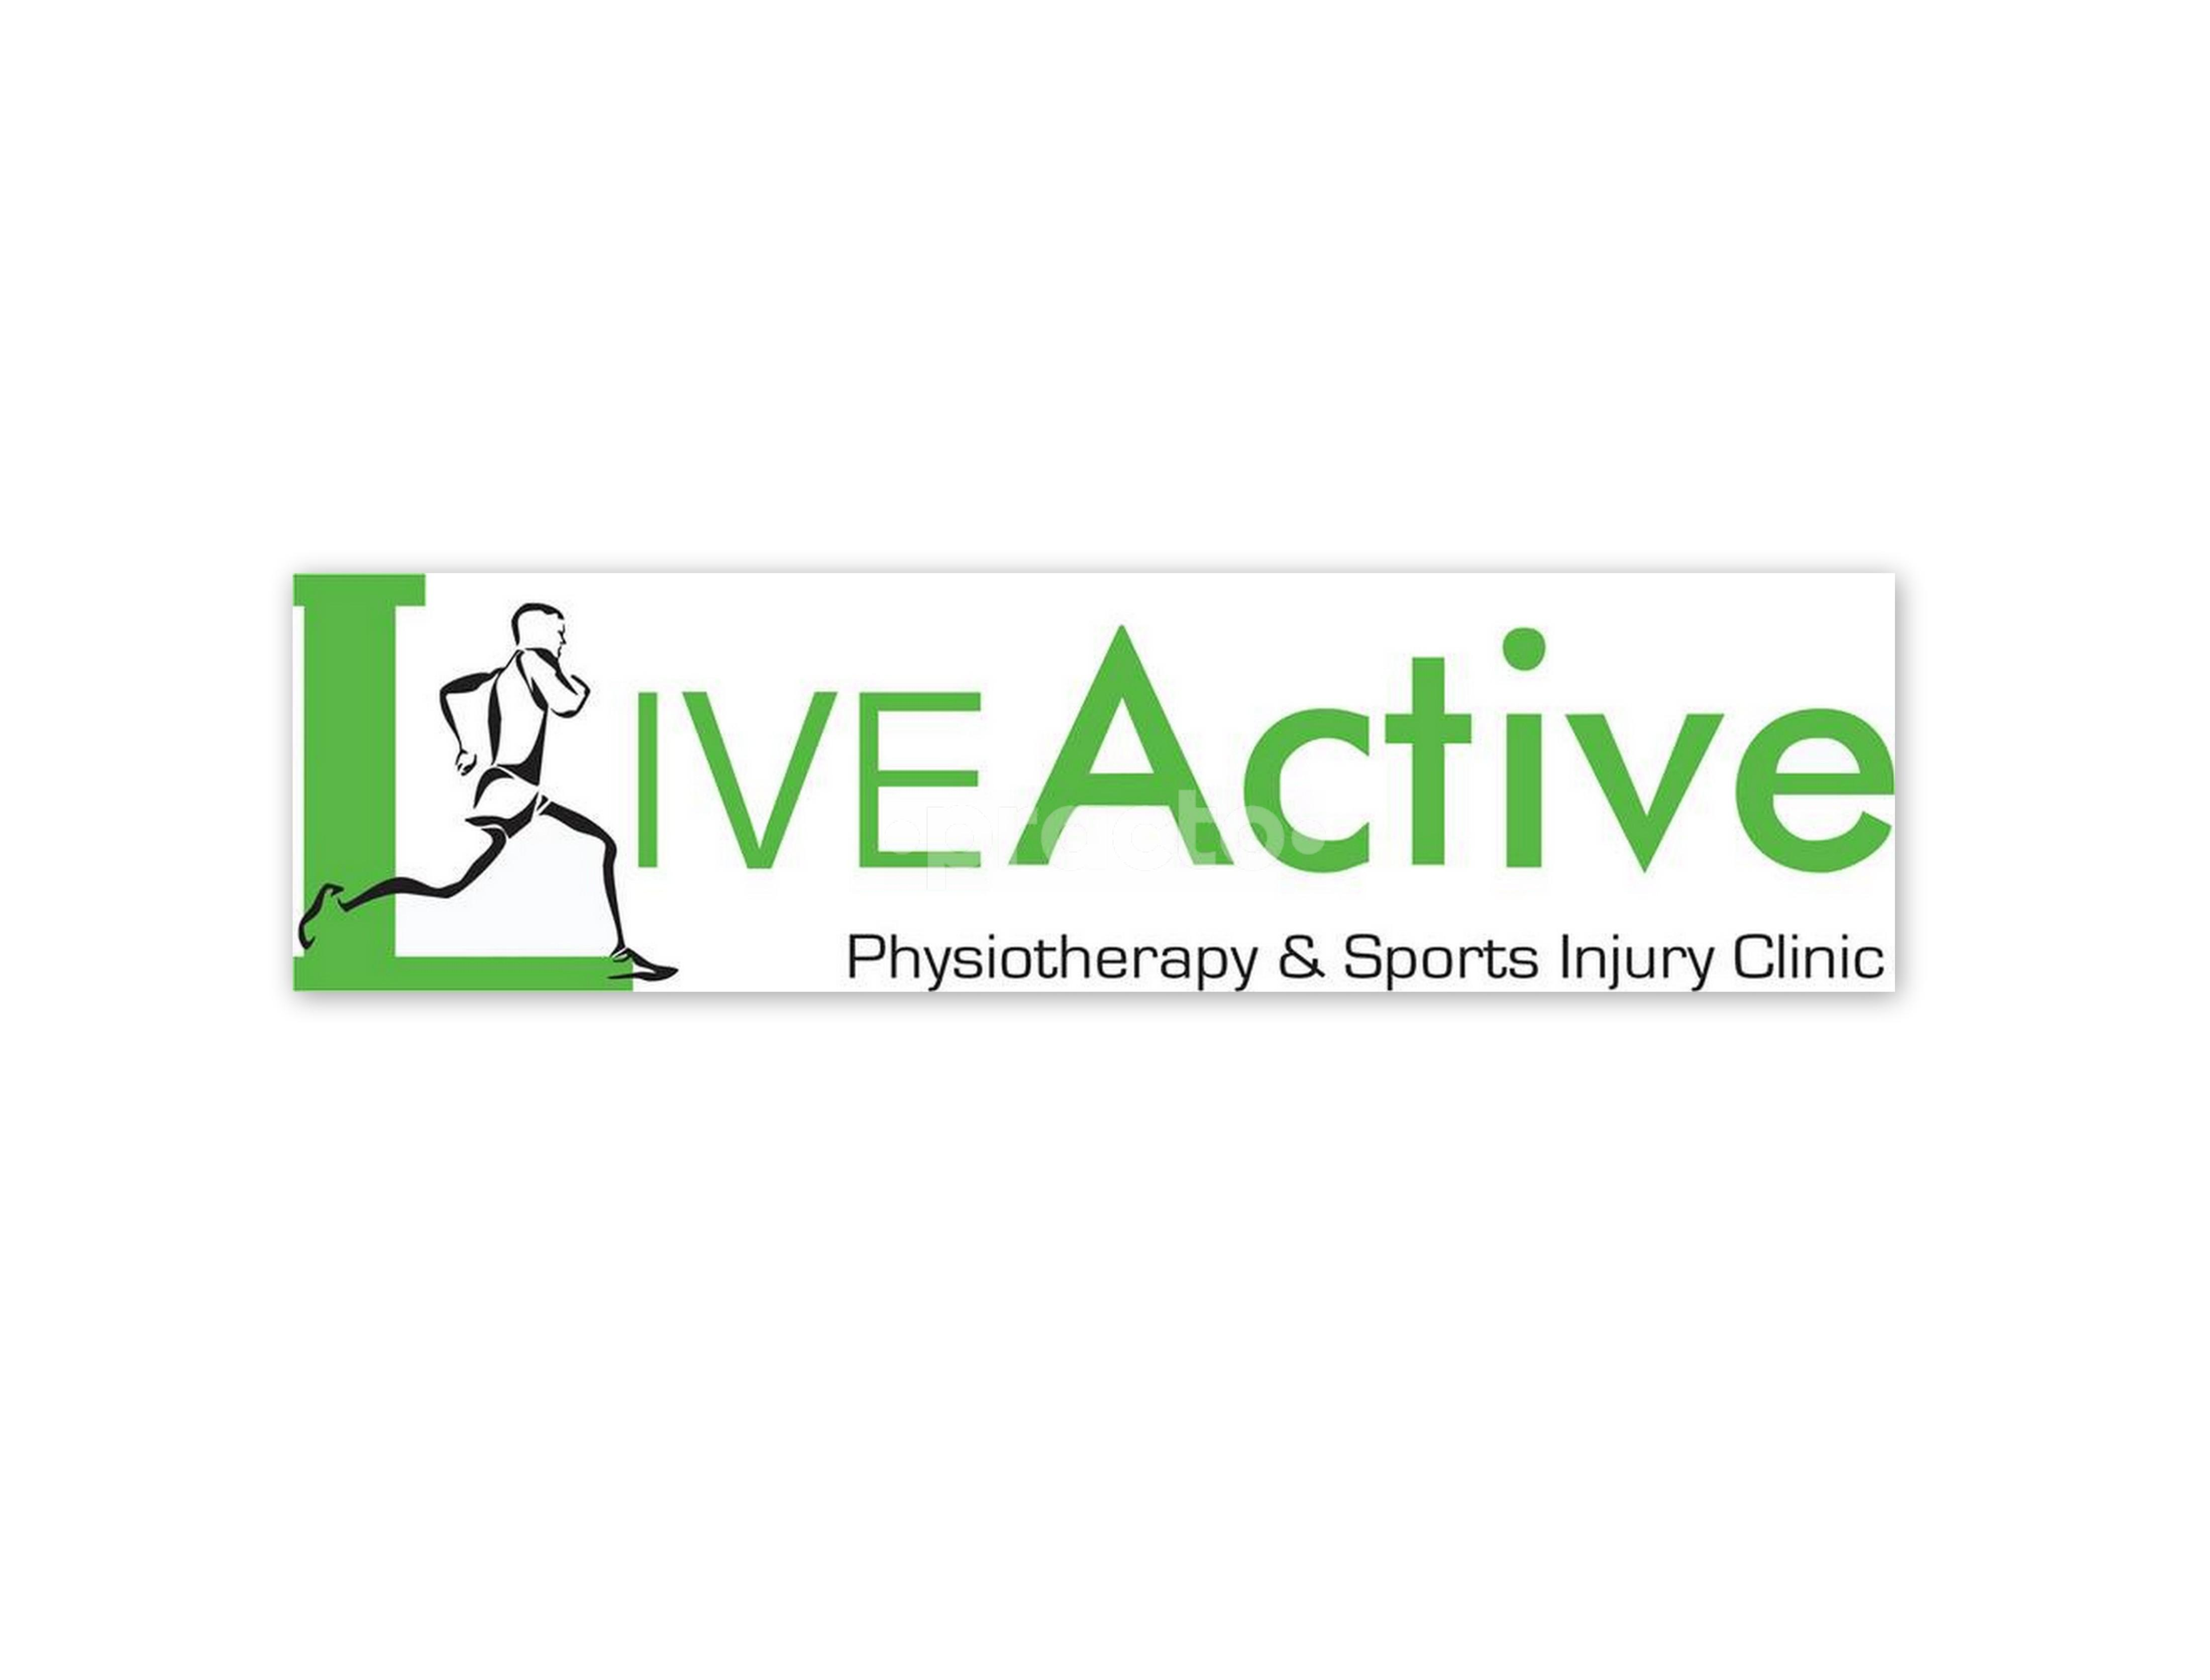 LiveActive Physiotherapy And Sport Injury Clinic